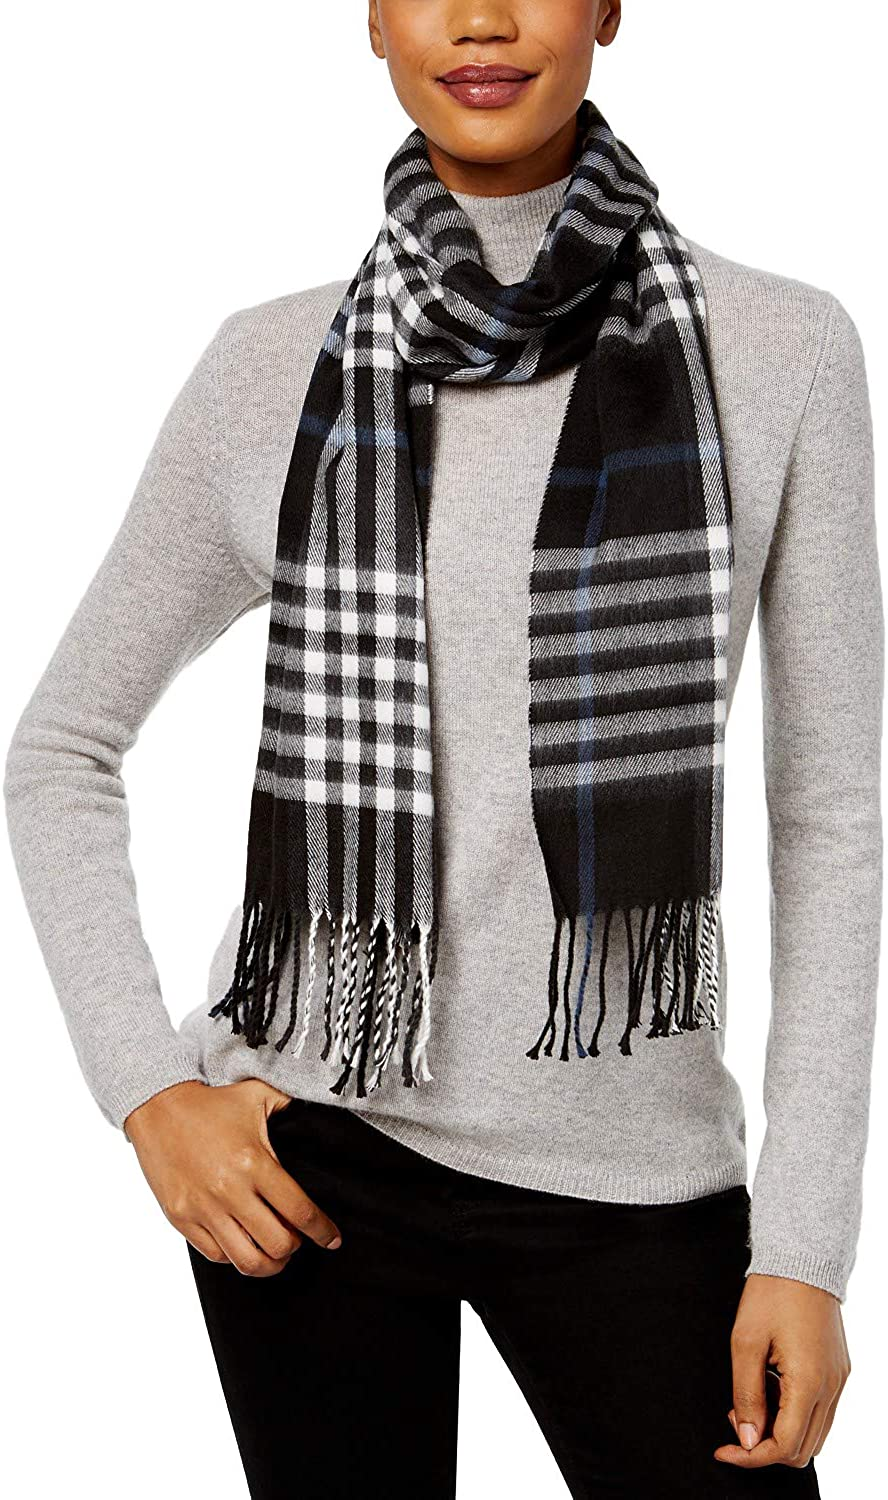 Cejon Women's Tartan Plaid Fringe Scarf, Black, One Size